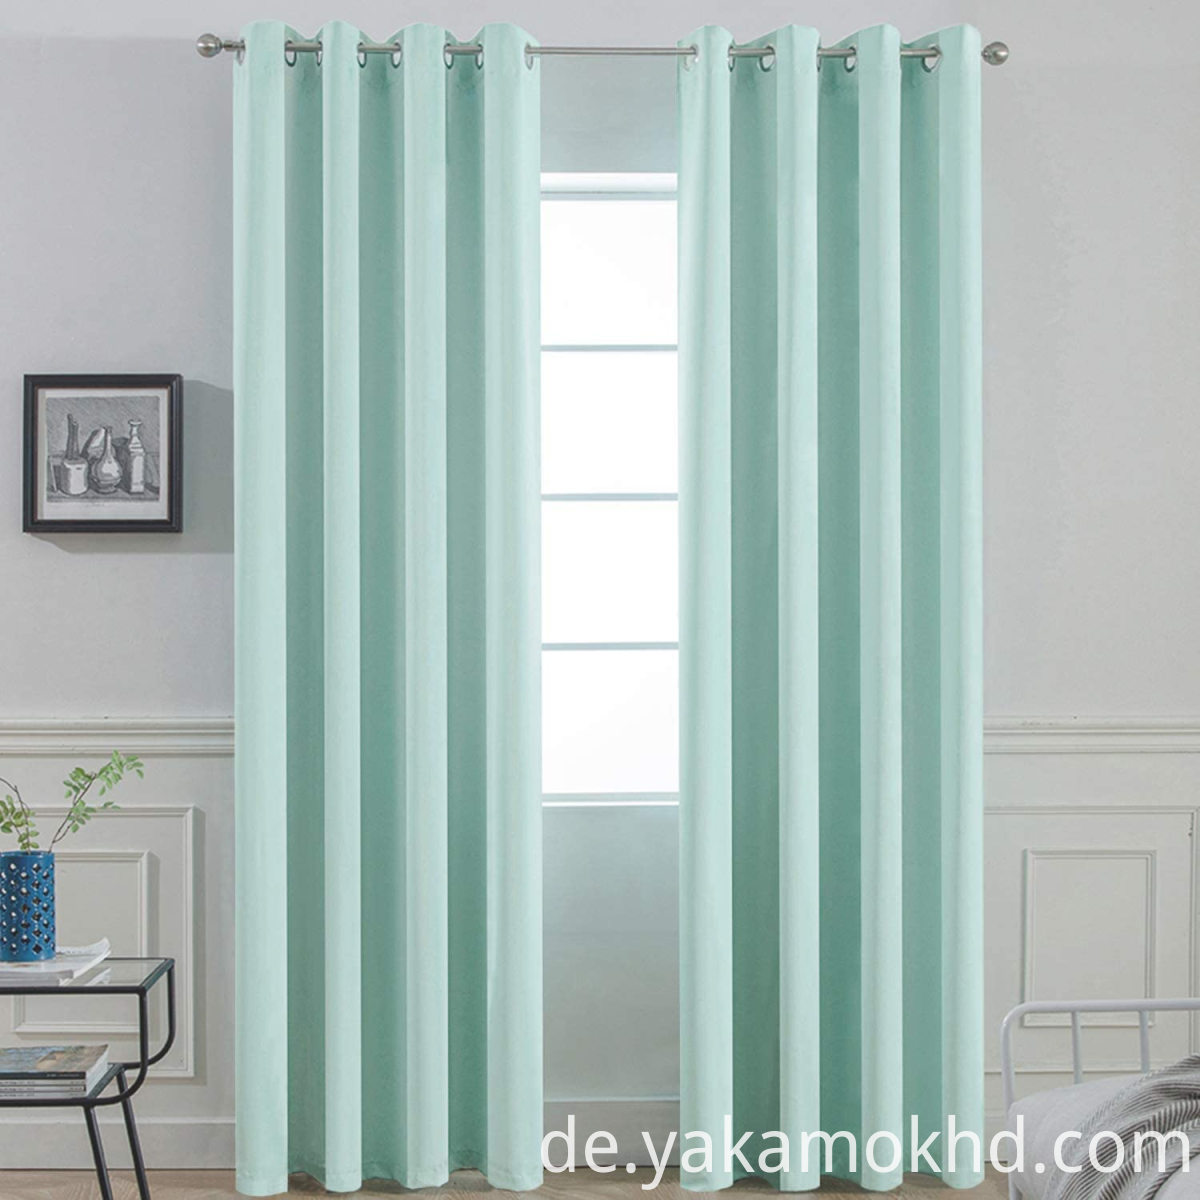 96 Inch Long Blackout Curtains